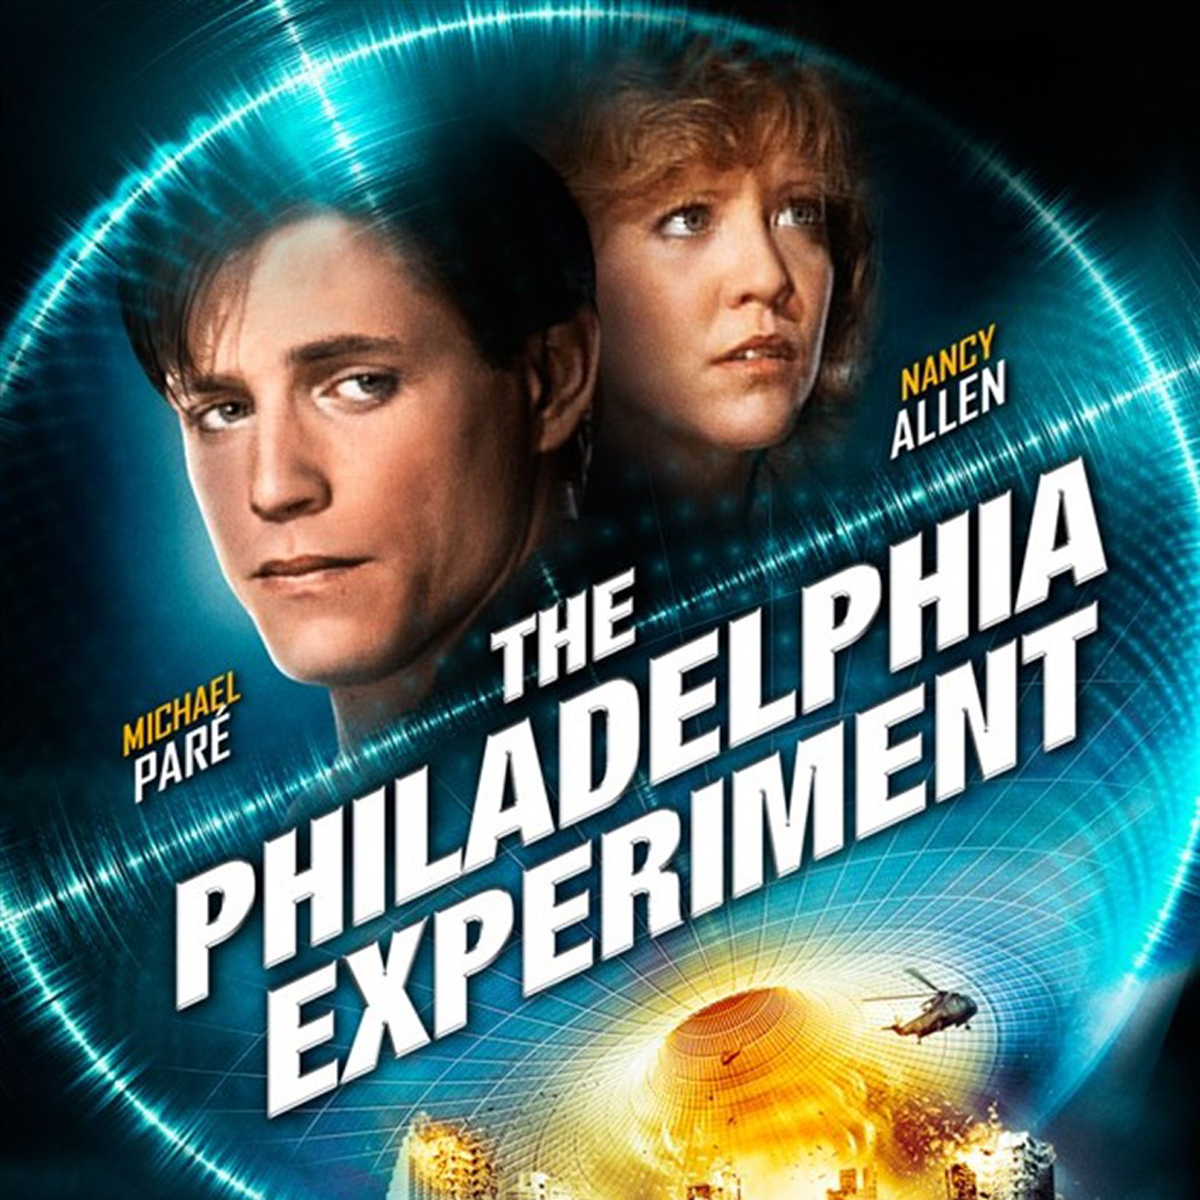 ISTYA Philadelphia Experiment Review